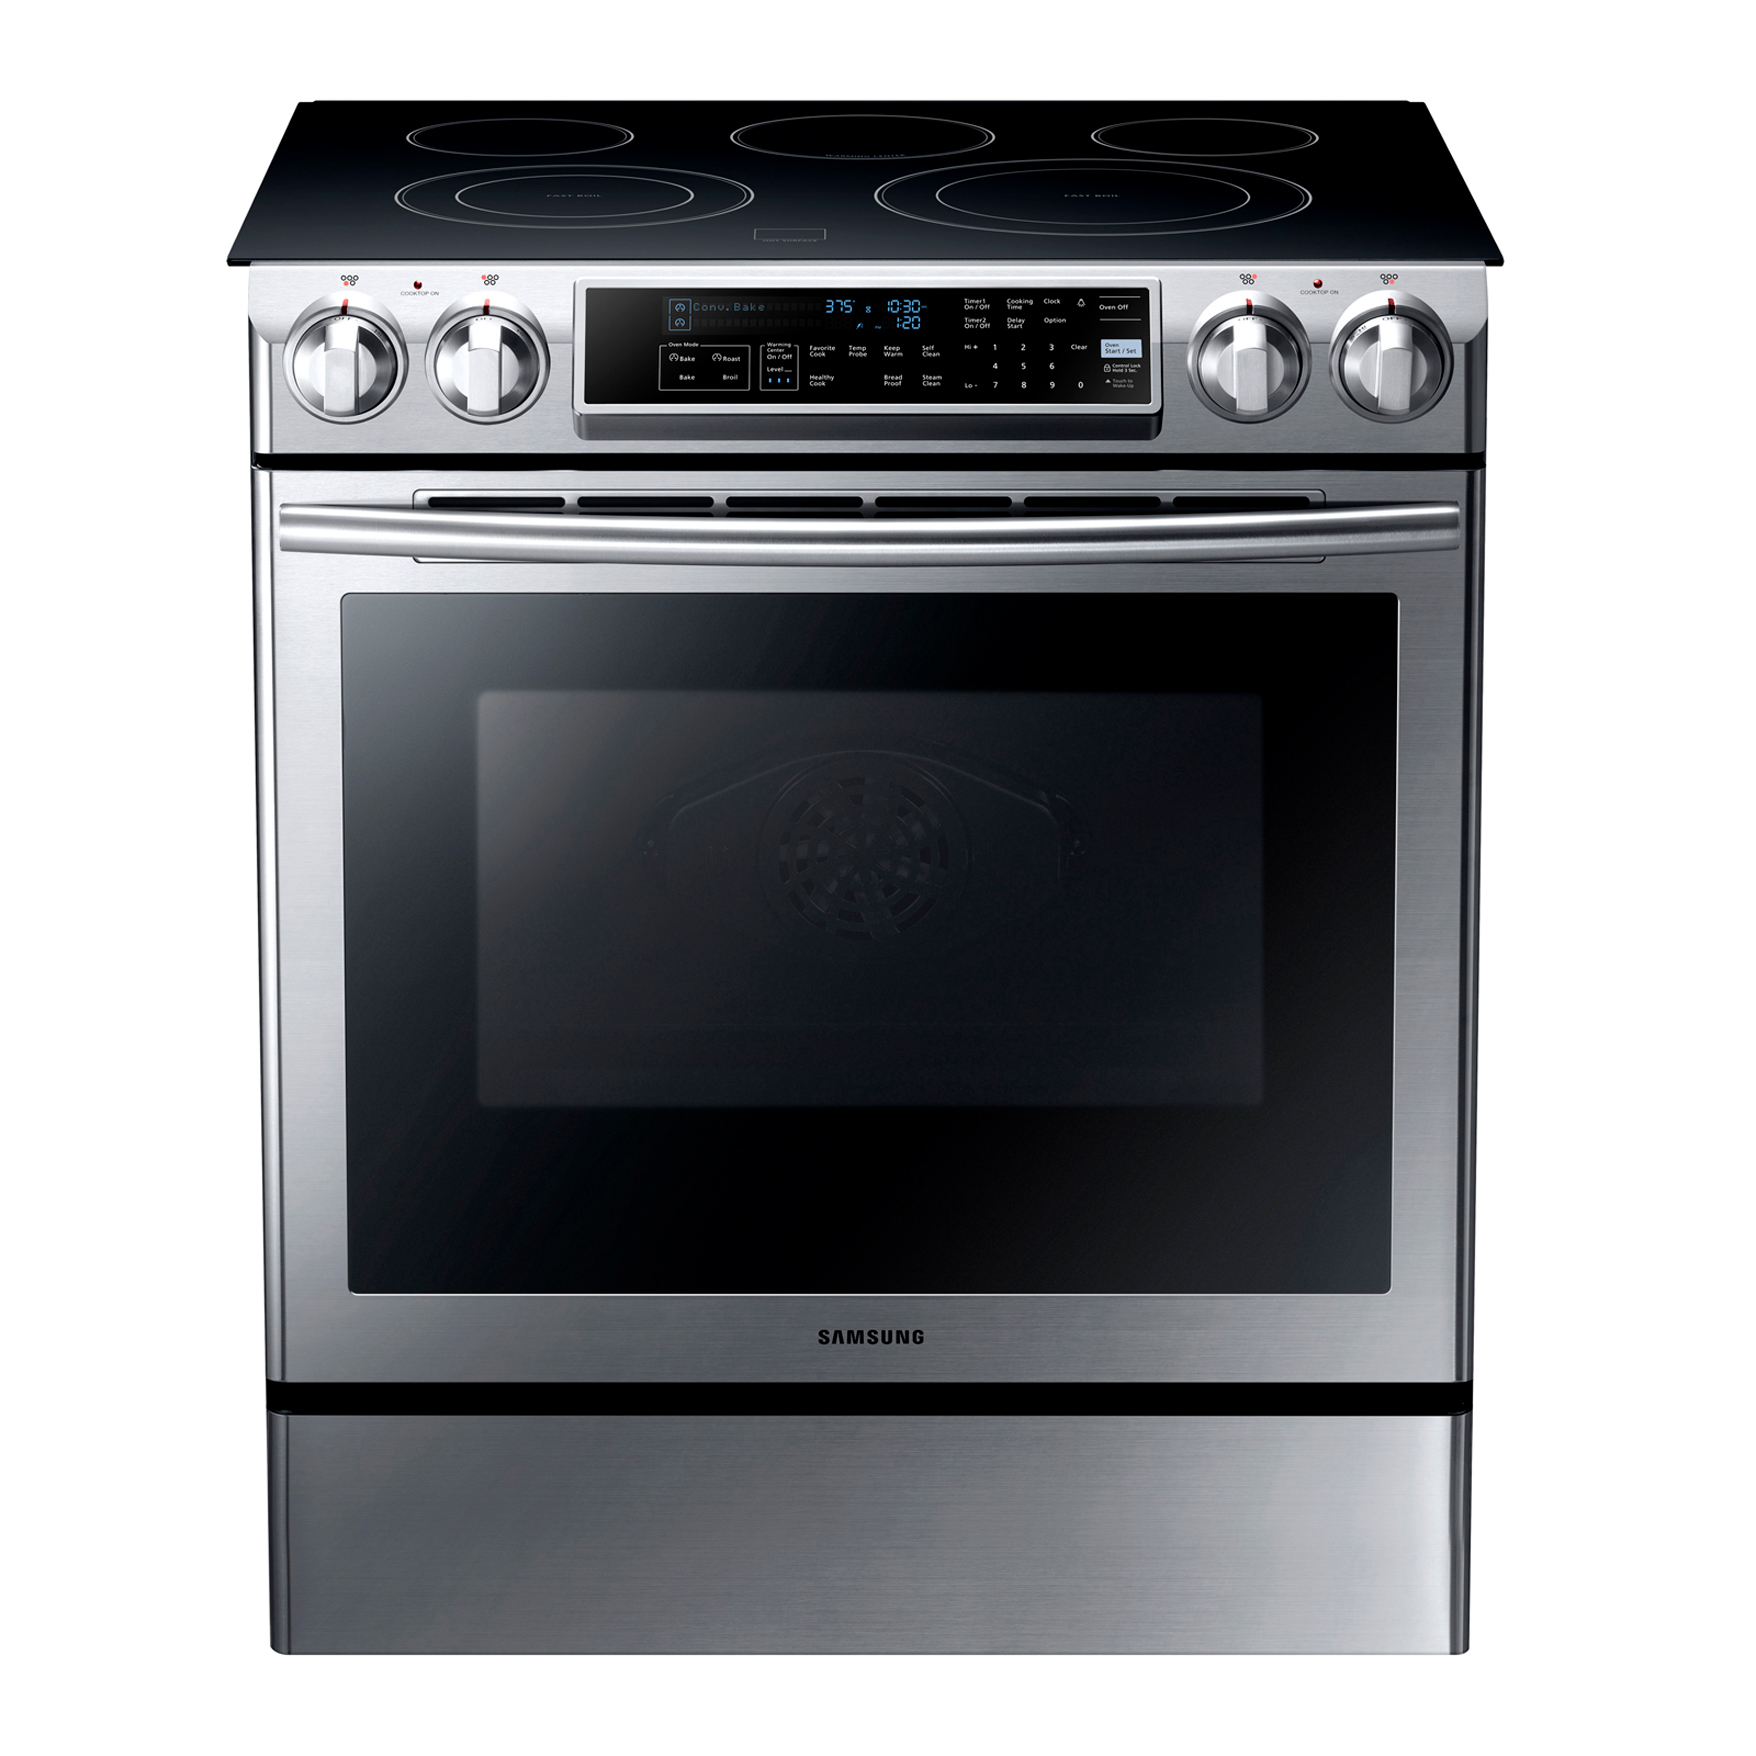 "Samsung - Ne58f9500ss 30"" Slide-in Electric Range"